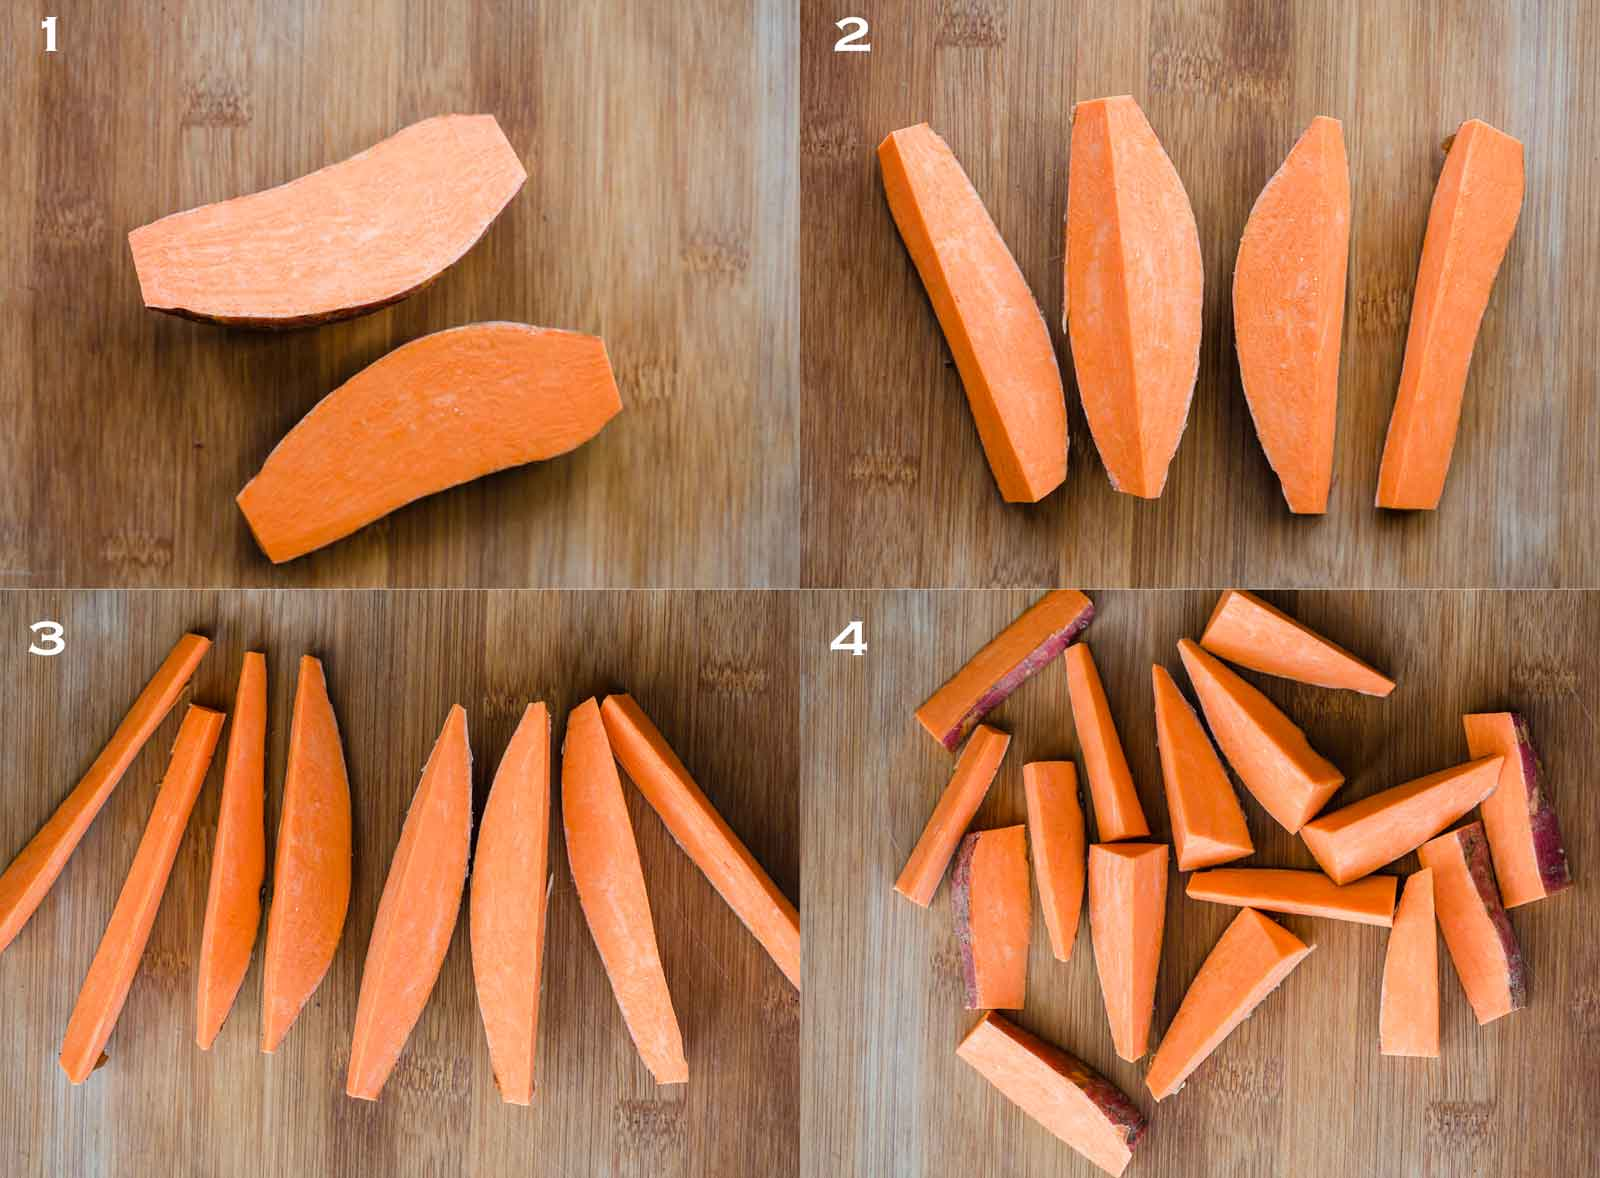 How to cut sweet potato into wedges - step by step instructions